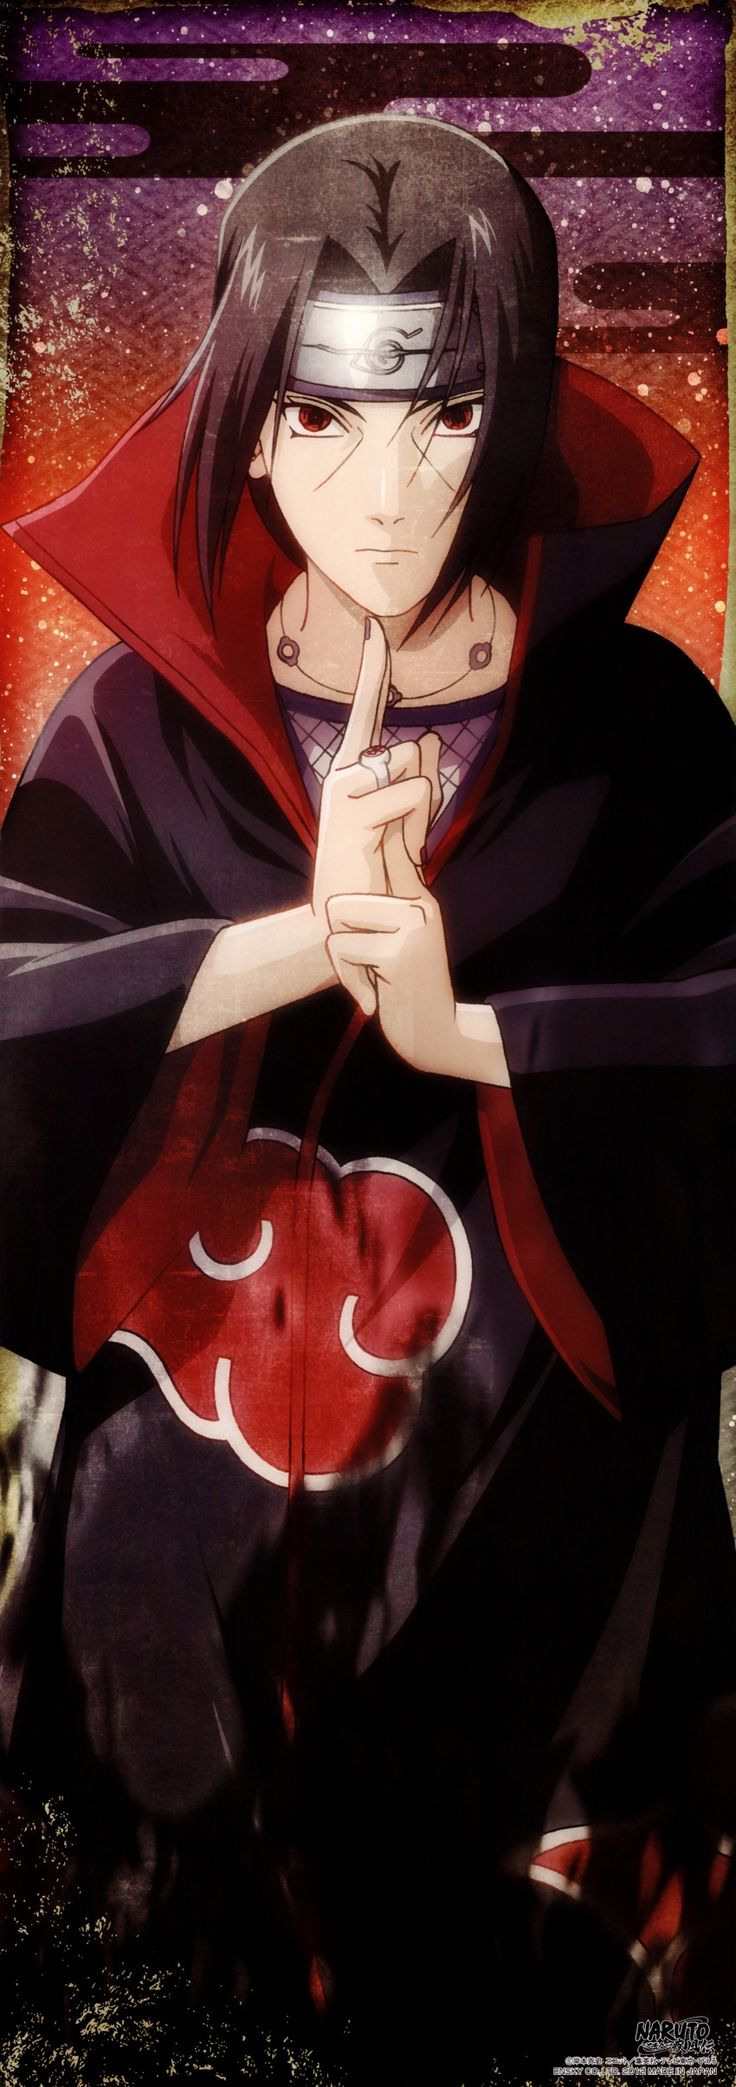 Day 12: Favorite Akatsuki member........ Itachi! Itachi is amazing! Everyone thinks he's a villain but he is a hero! Who is your favorite Akatsuki member?